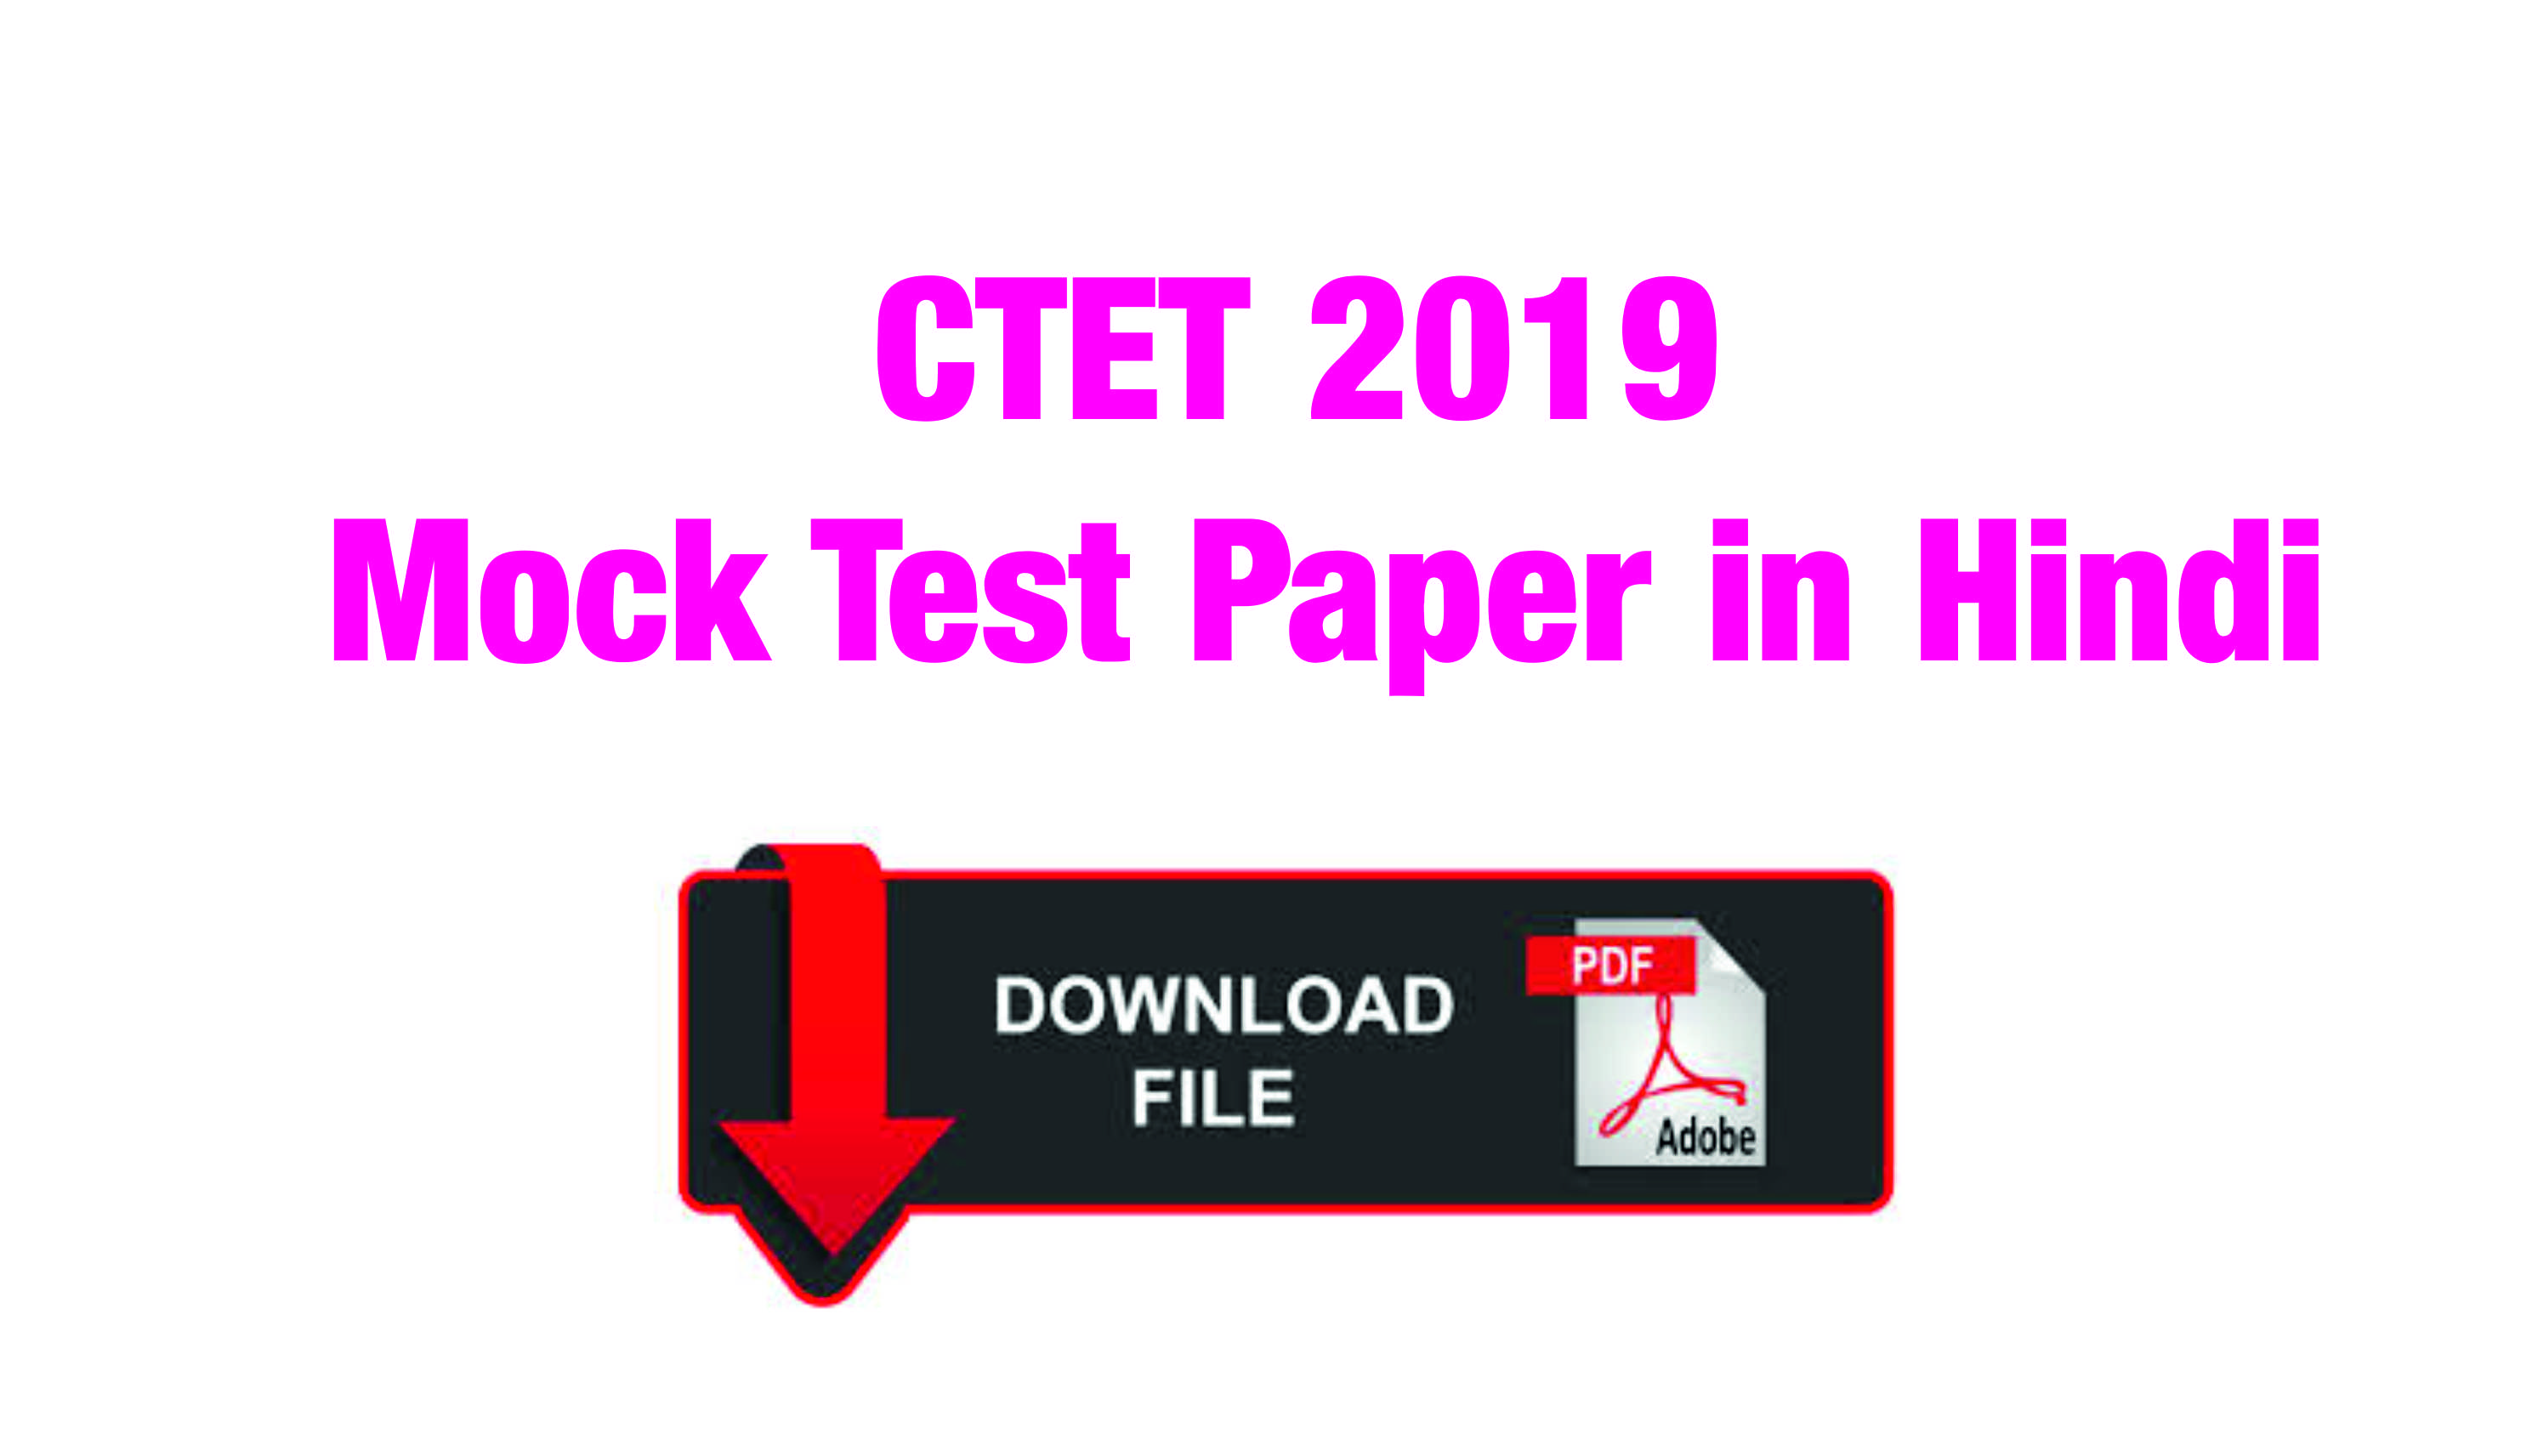 CTET 2019 Mock Test Paper in Hindi